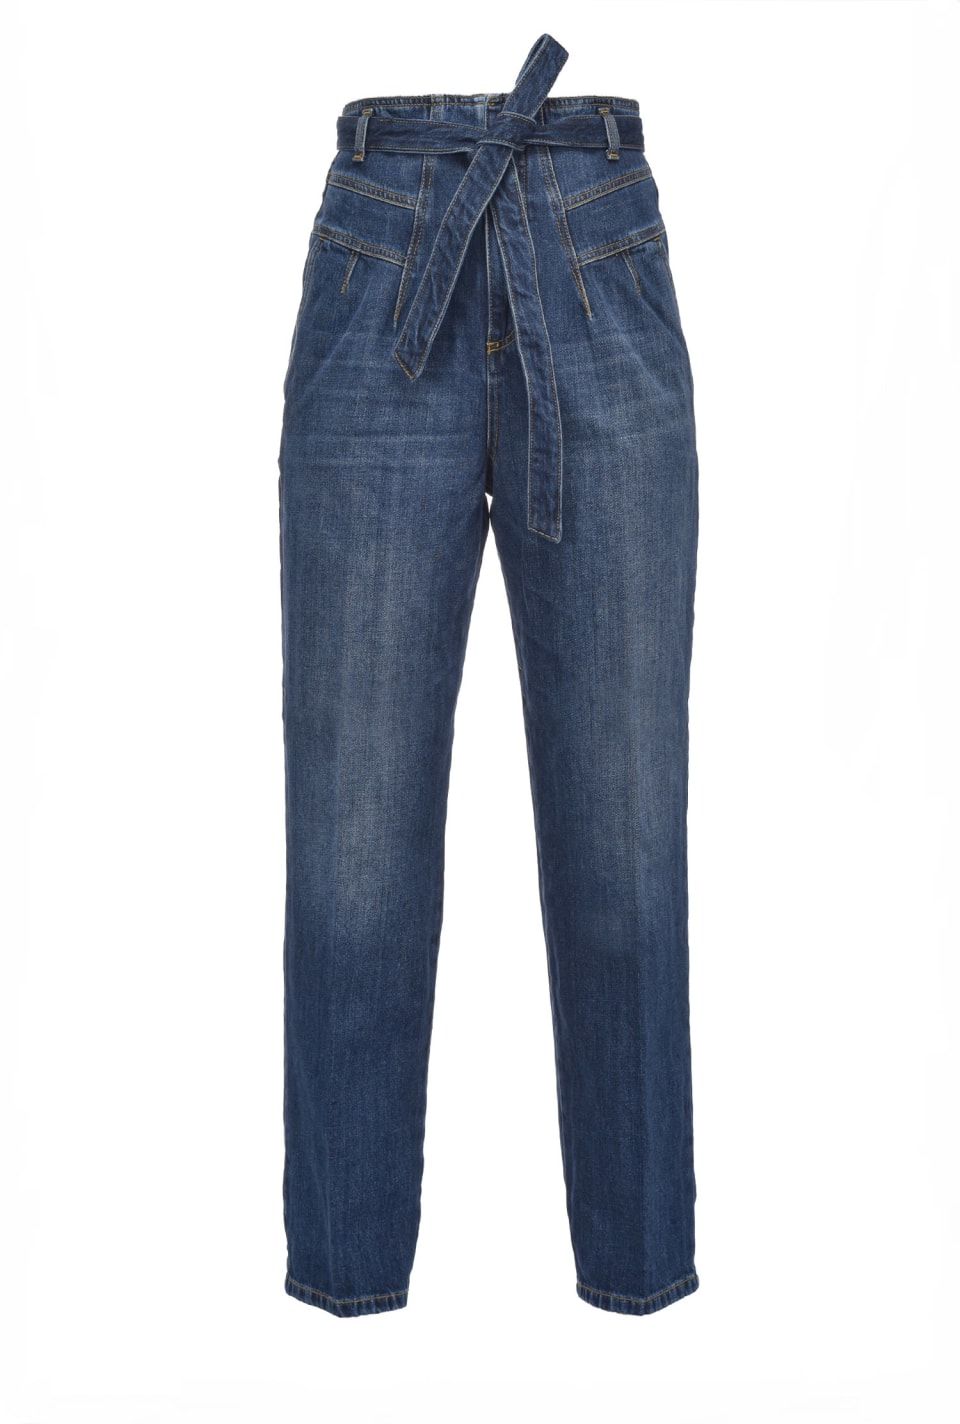 Carrot-fit jeans in vintage denim - Pinko